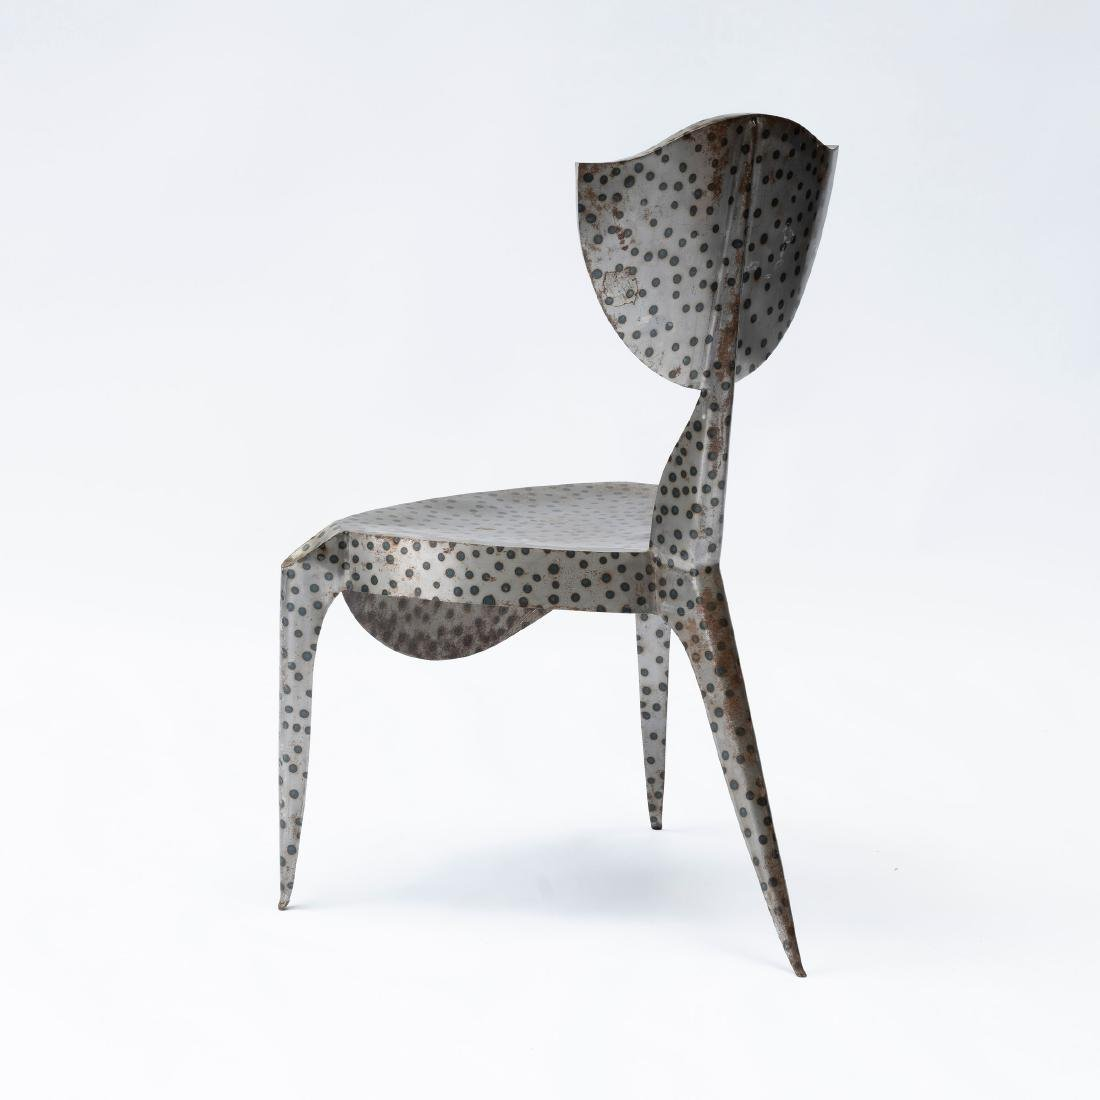 'Paris chair', 1988 - 9